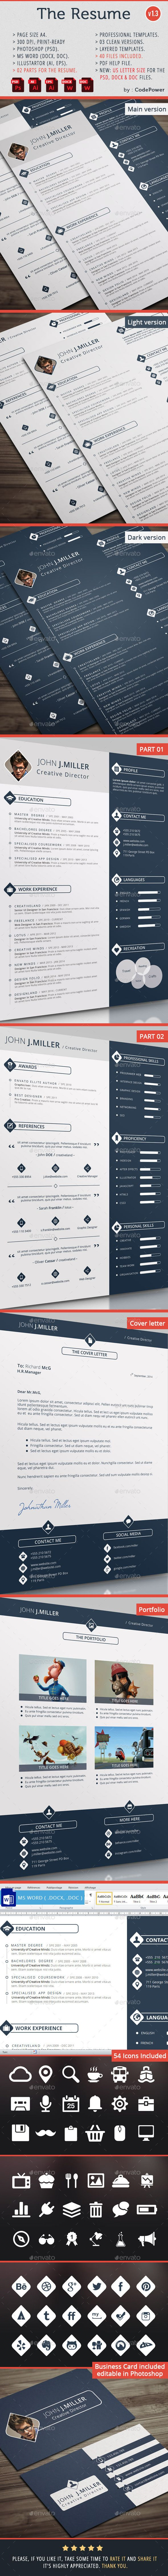 207 best Graphic design | cv images on Pinterest | Creative ...